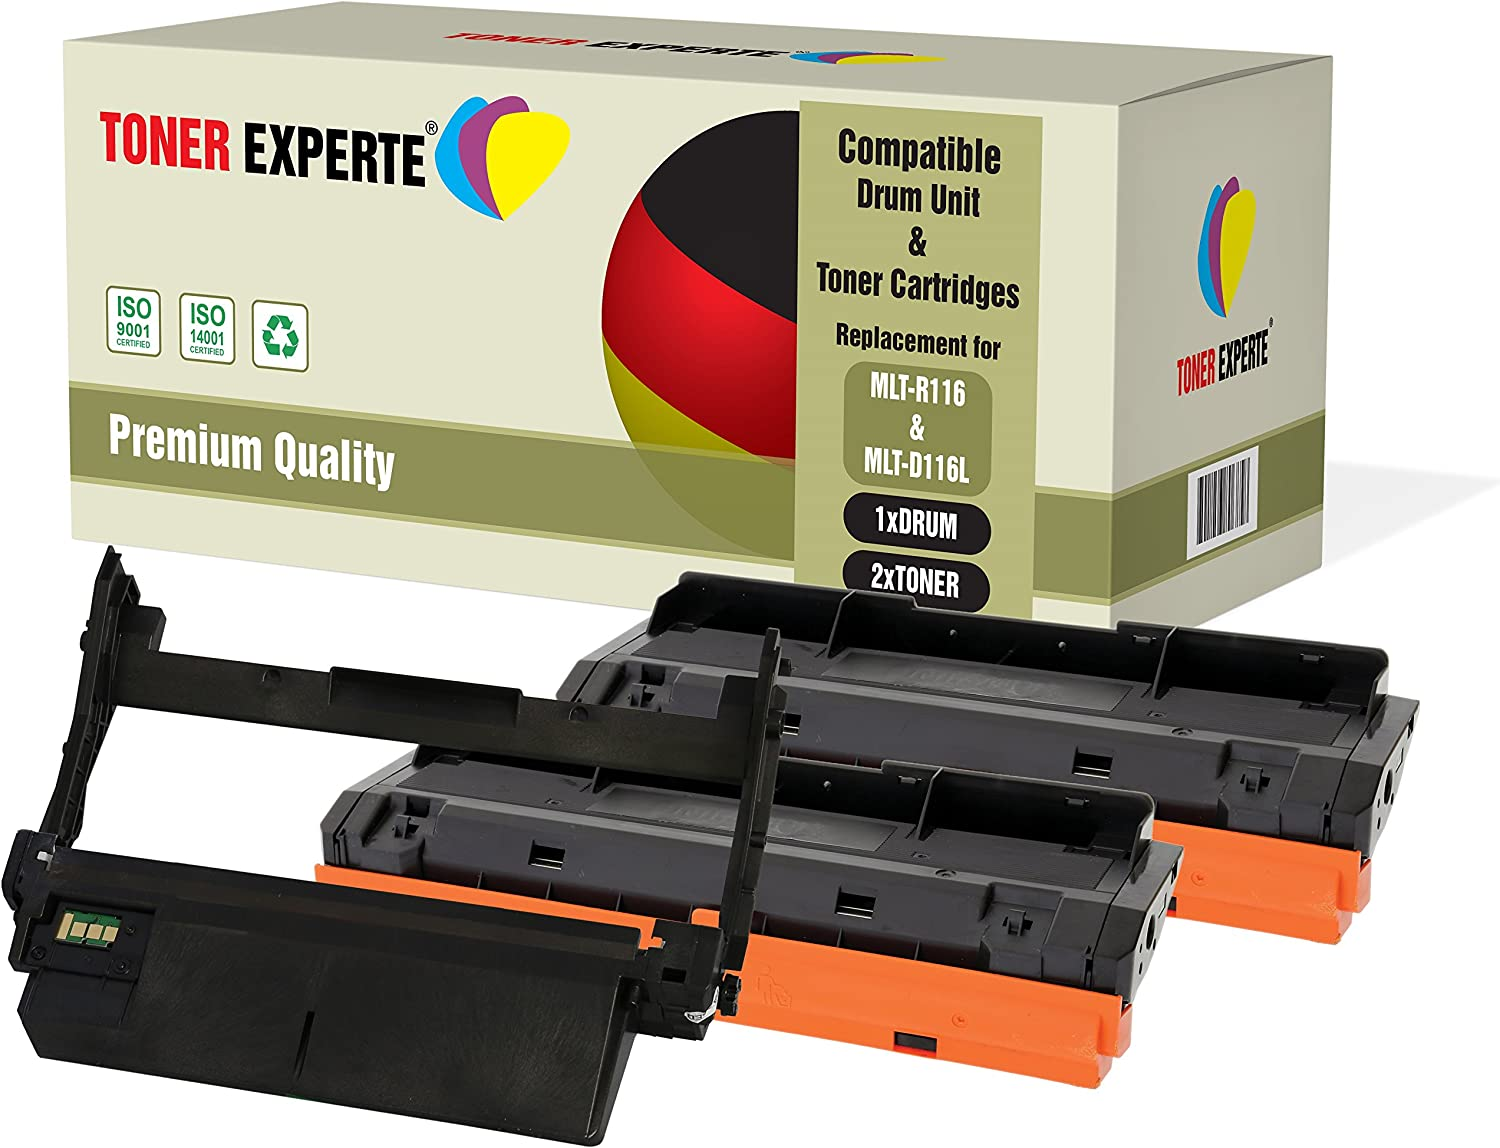 Toner Cartridge for Samsung Compatible MLT-D116L Pack of 3 Black FREE SHIPPING